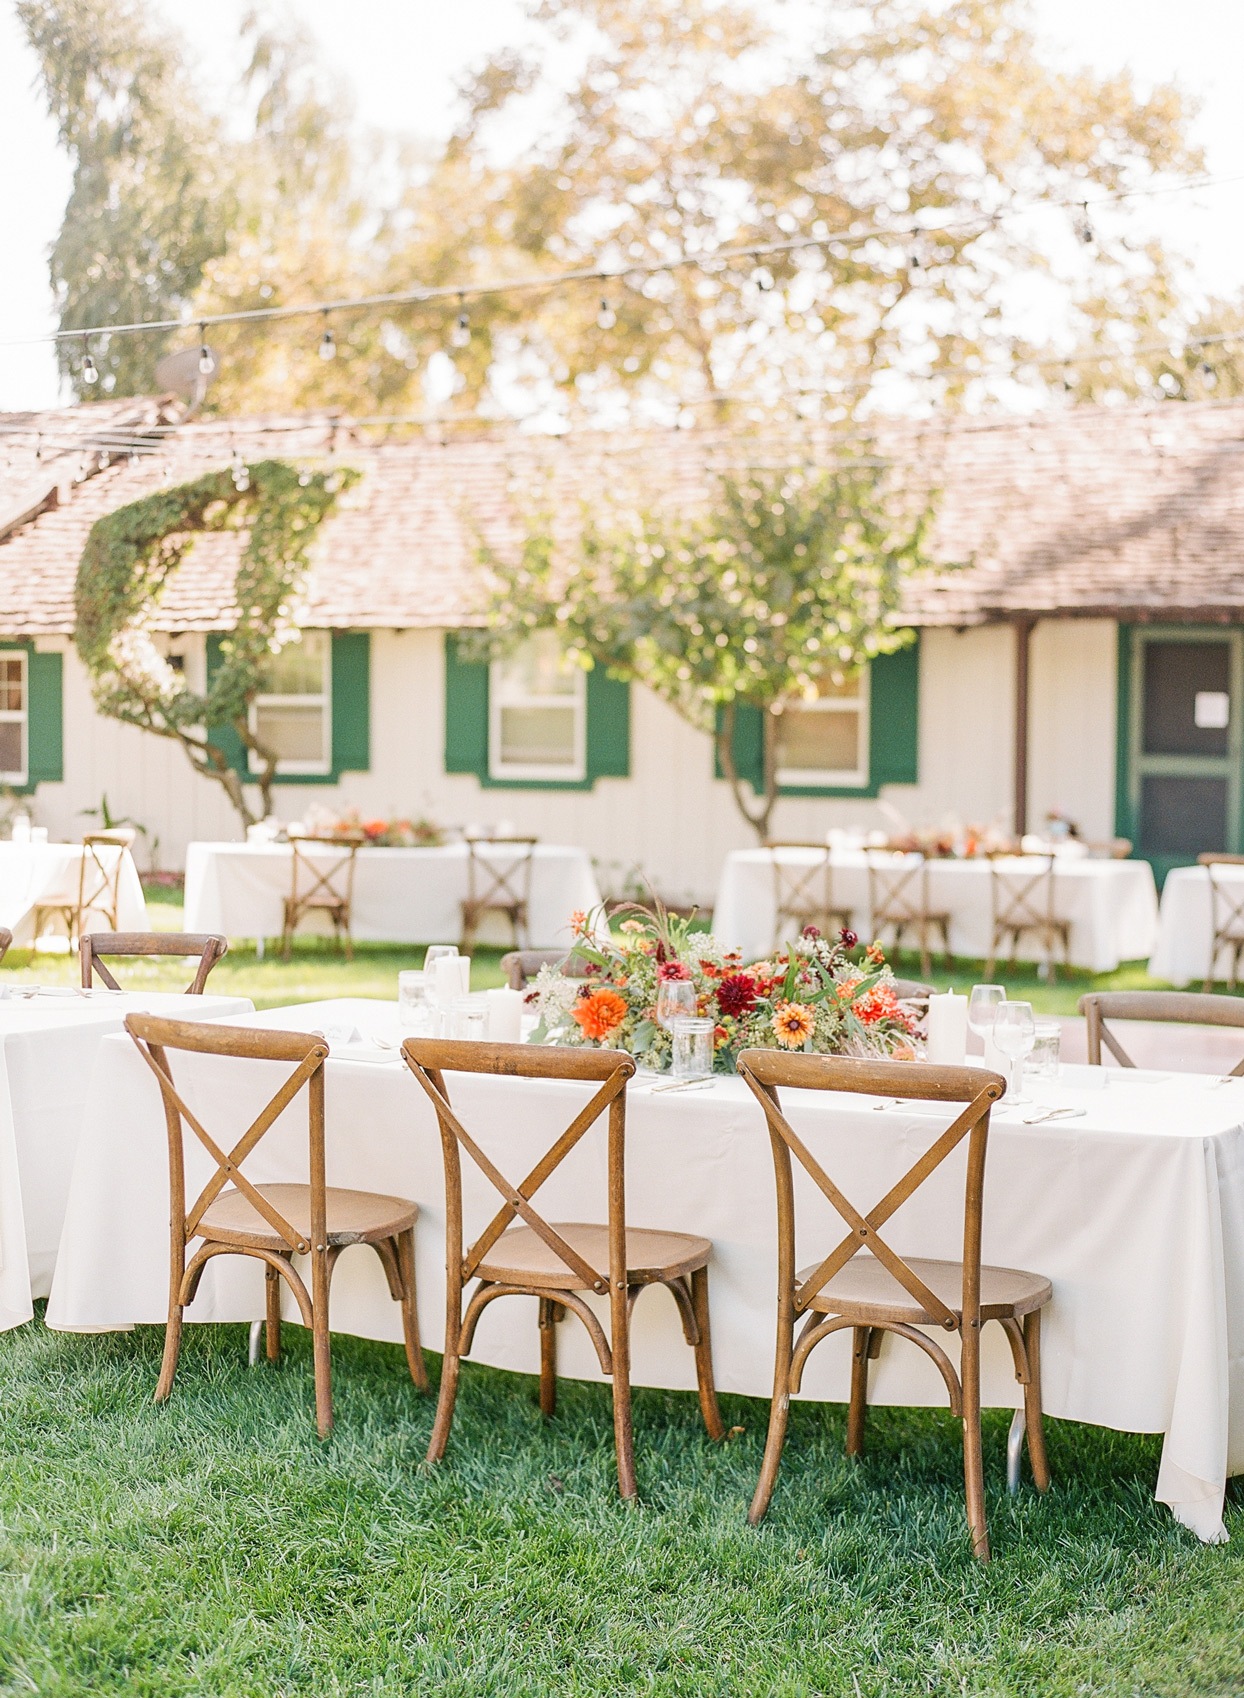 Long guest tables with white linens and florals